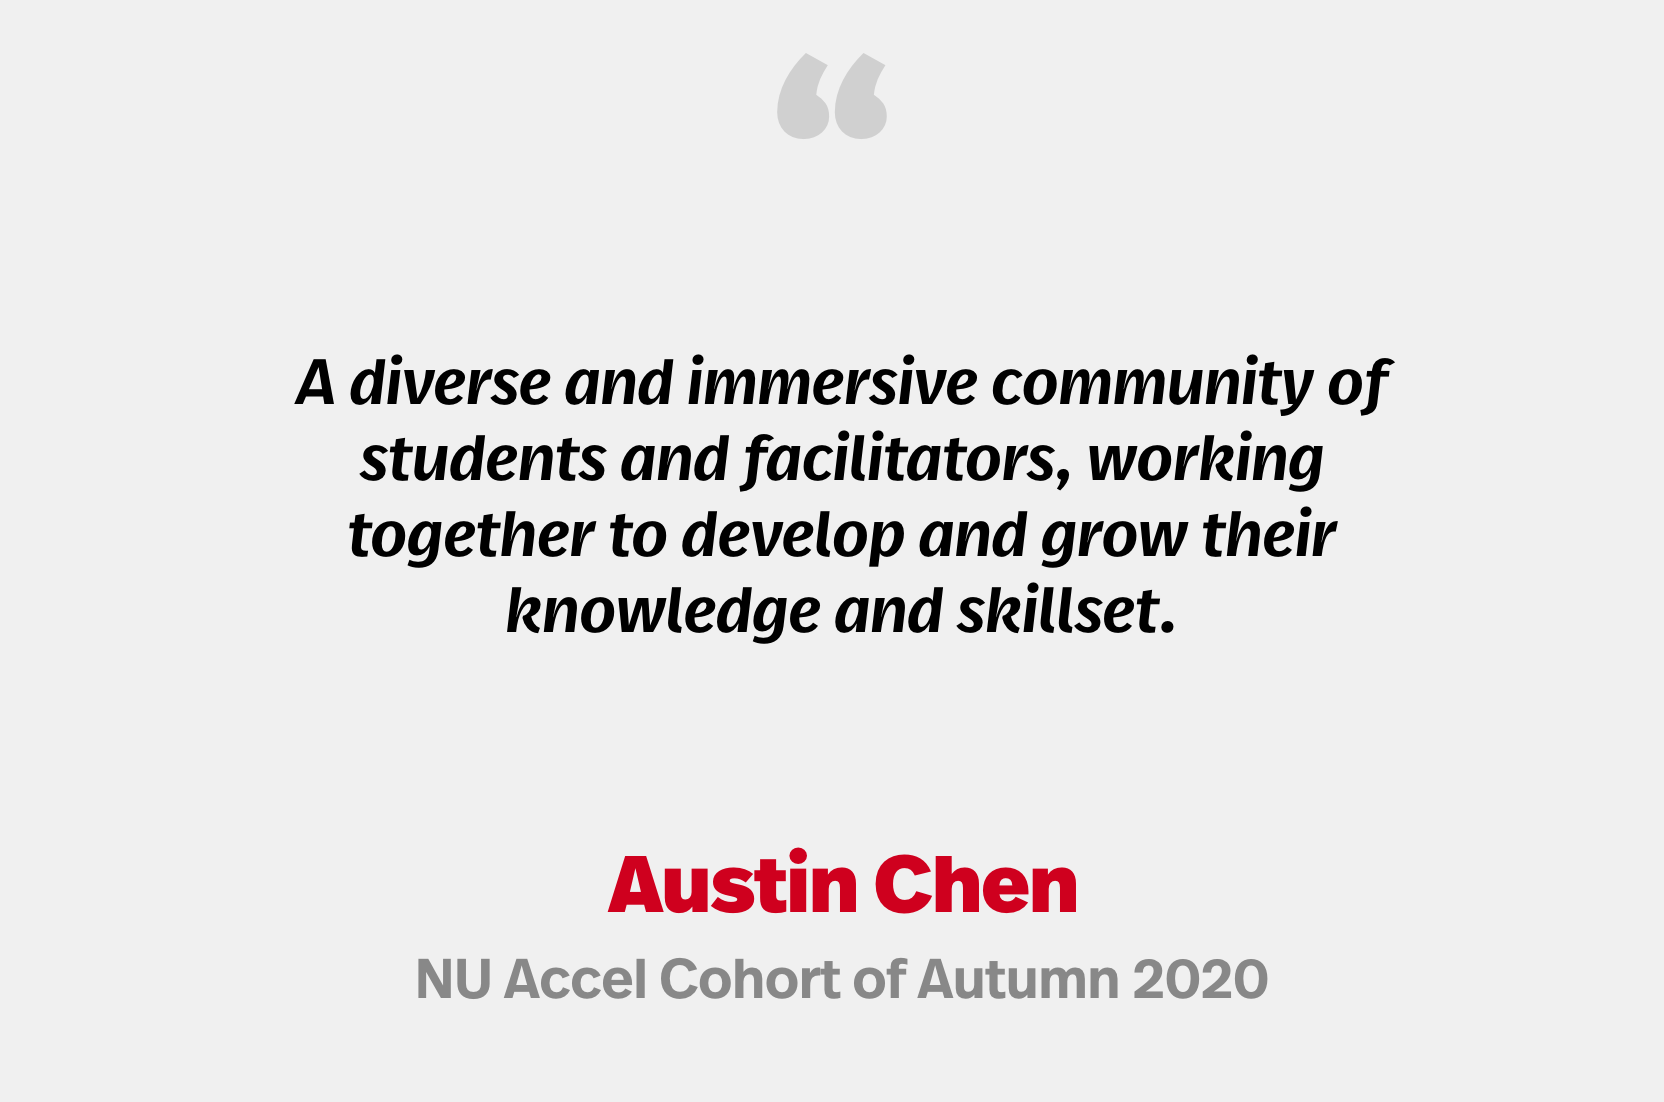 """""""A diverse and immersive community of students and facilitators, working together to develop and grow their knowledge and skillset."""" Austin Chen, NU Accel Cohort of Autumn 2020"""